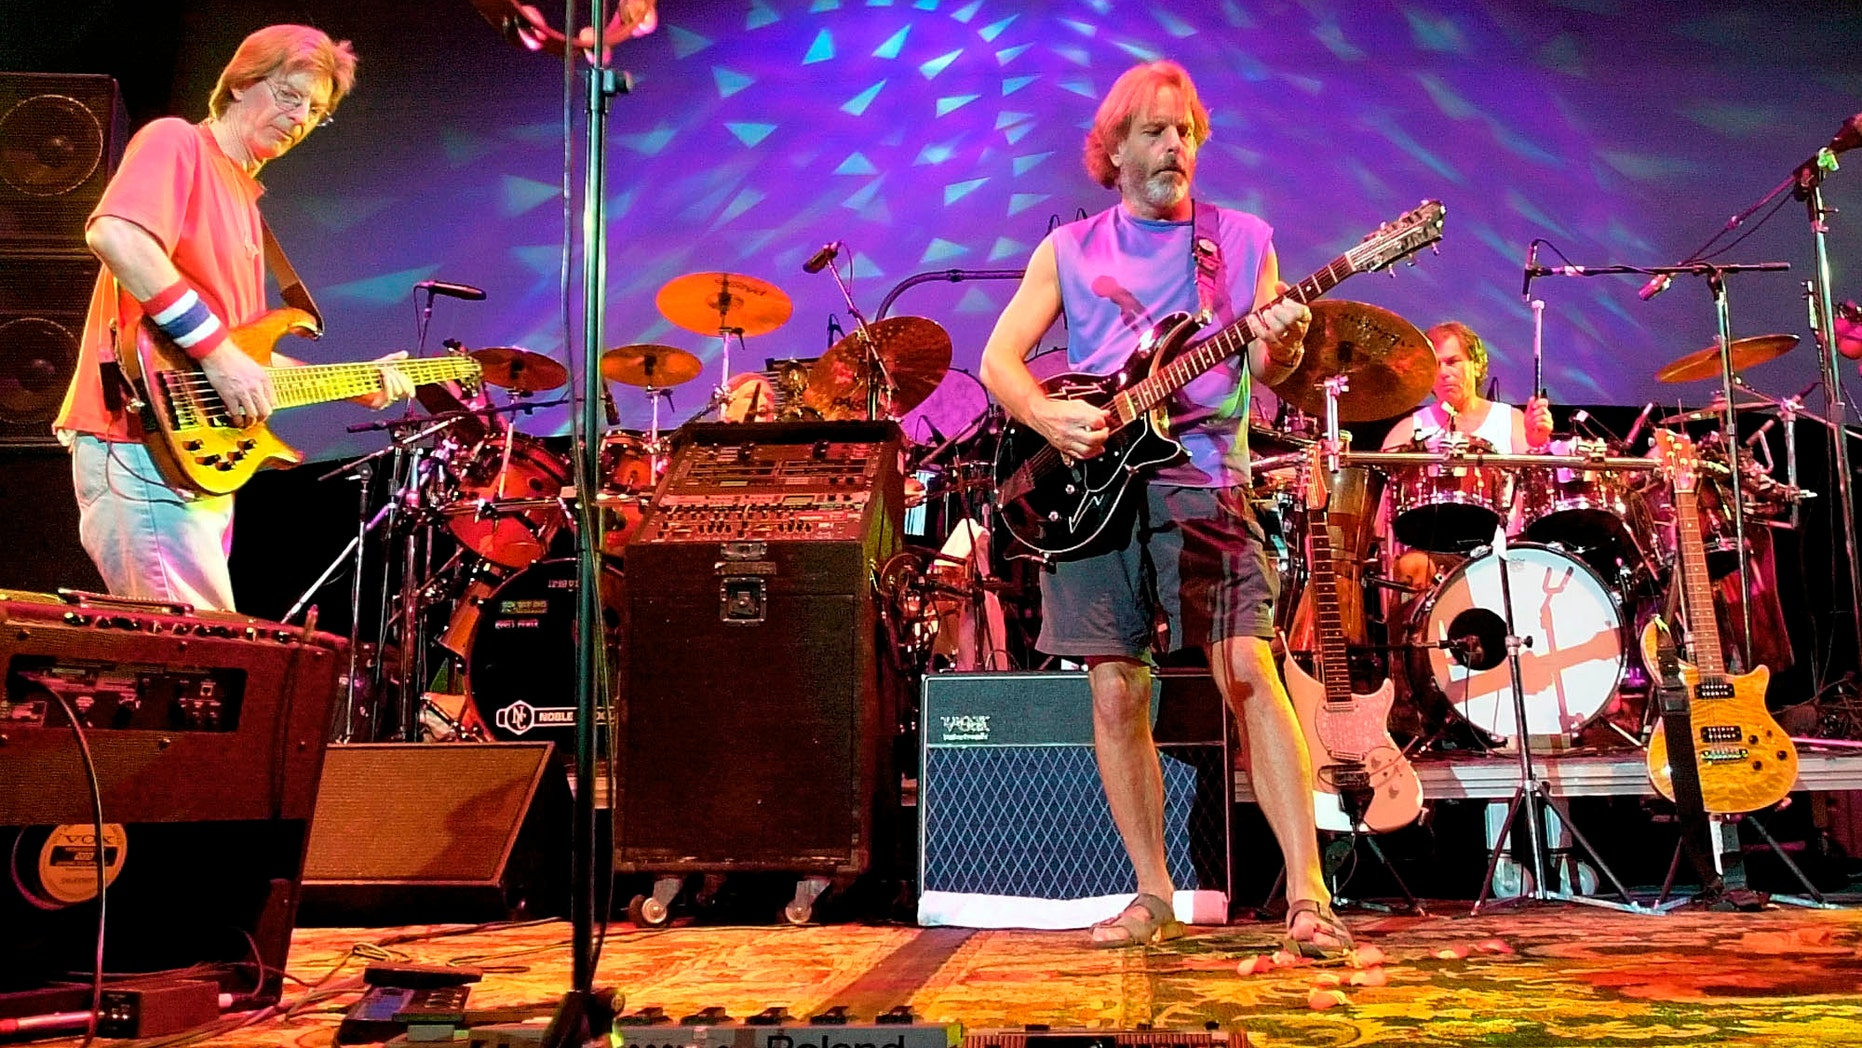 Aug. 3, 2002.The Grateful Dead, from left, Phil Lesh, Bill Kreutzmann, Bob Weir and Mickey Hart perform during a reunion concert in East Troy, Wis.